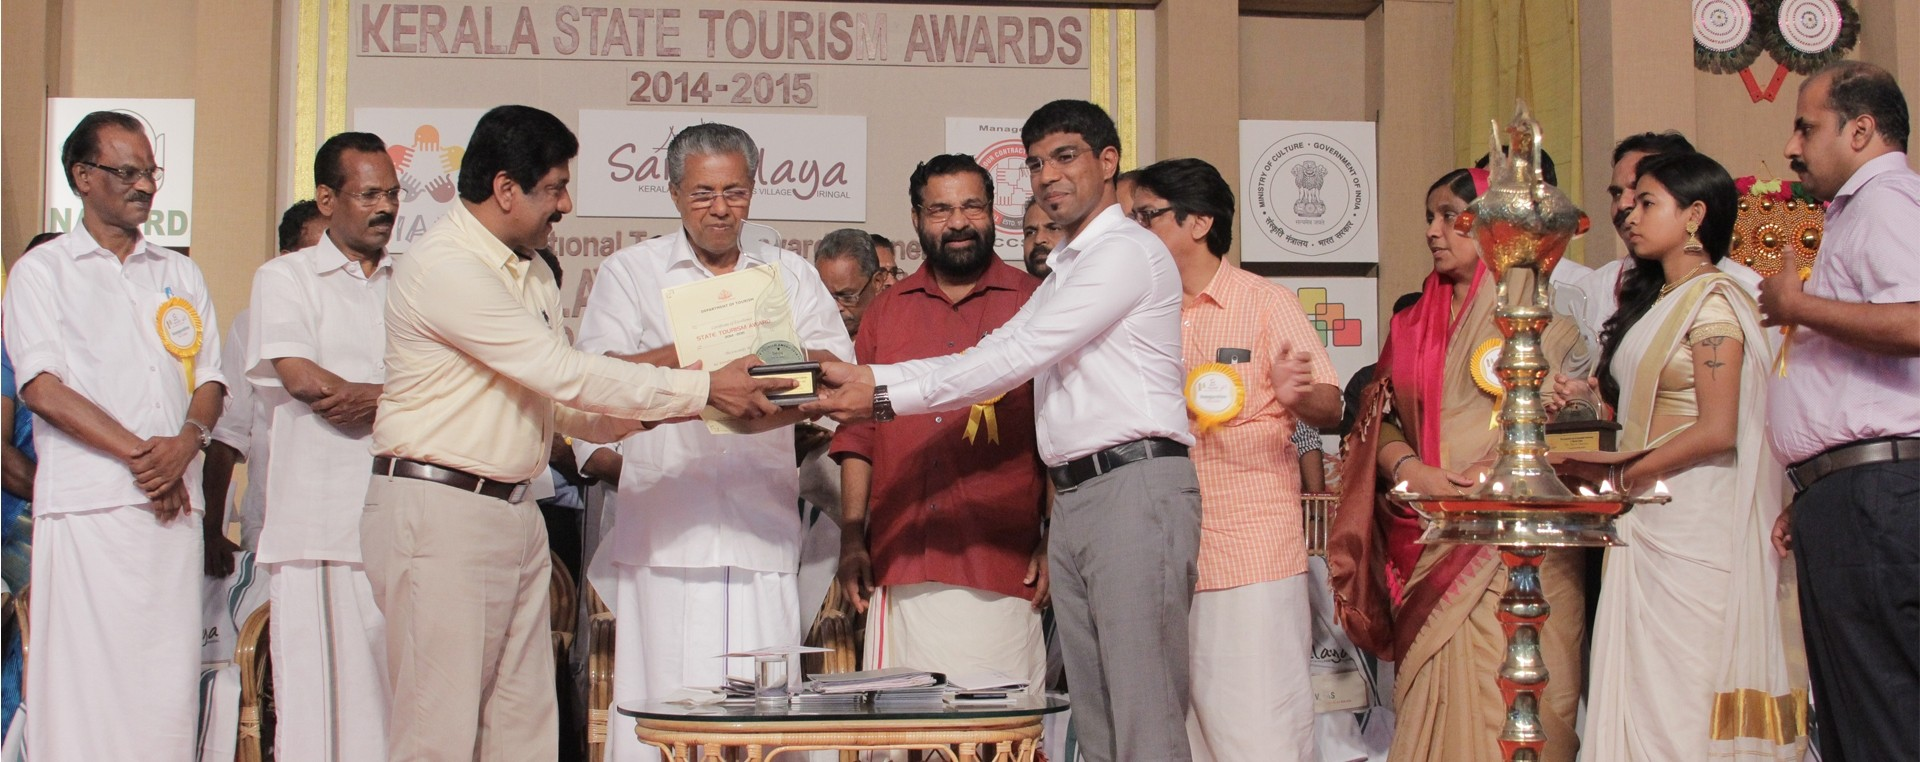 Kerala Tourism Award for the Best Innovative use of IT in tourism.